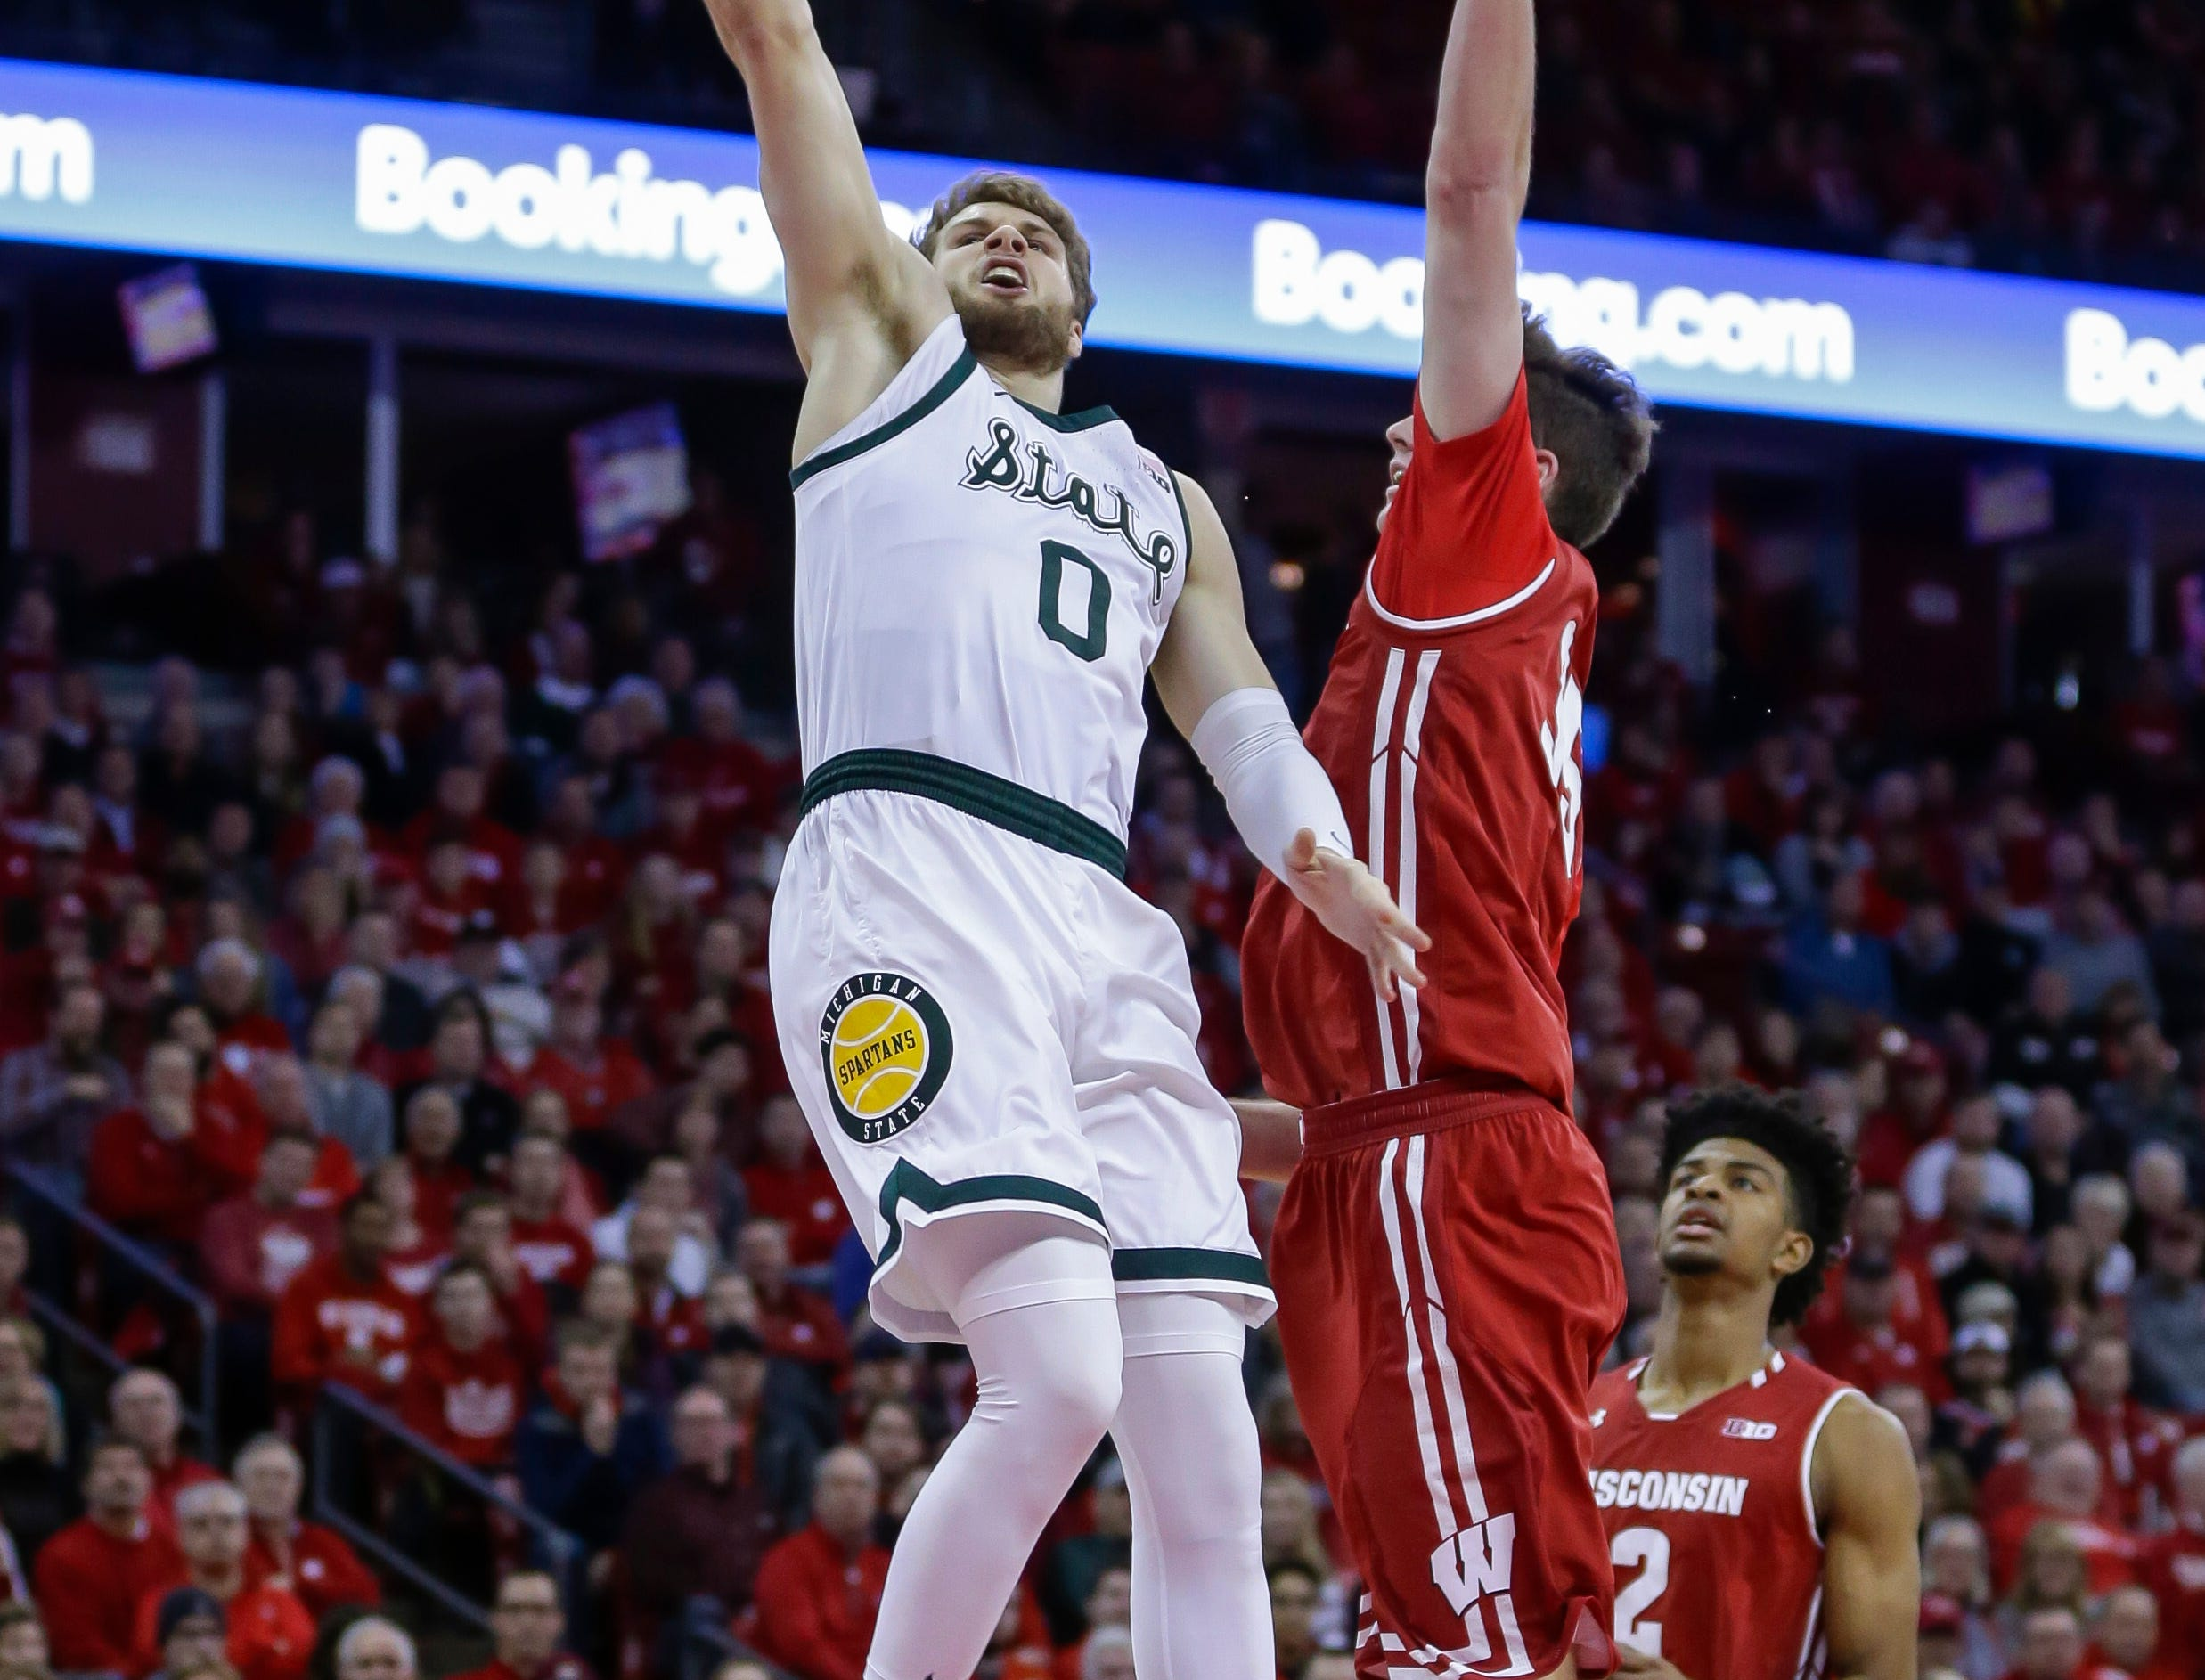 Michigan States's Kyle Ahrens (0) shoots against Wisconsin's Nate Reuvers (35) during the first half of an NCAA college basketball game Tuesday, Feb. 12, 2019, in Madison, Wis. (AP Photo/Andy Manis)